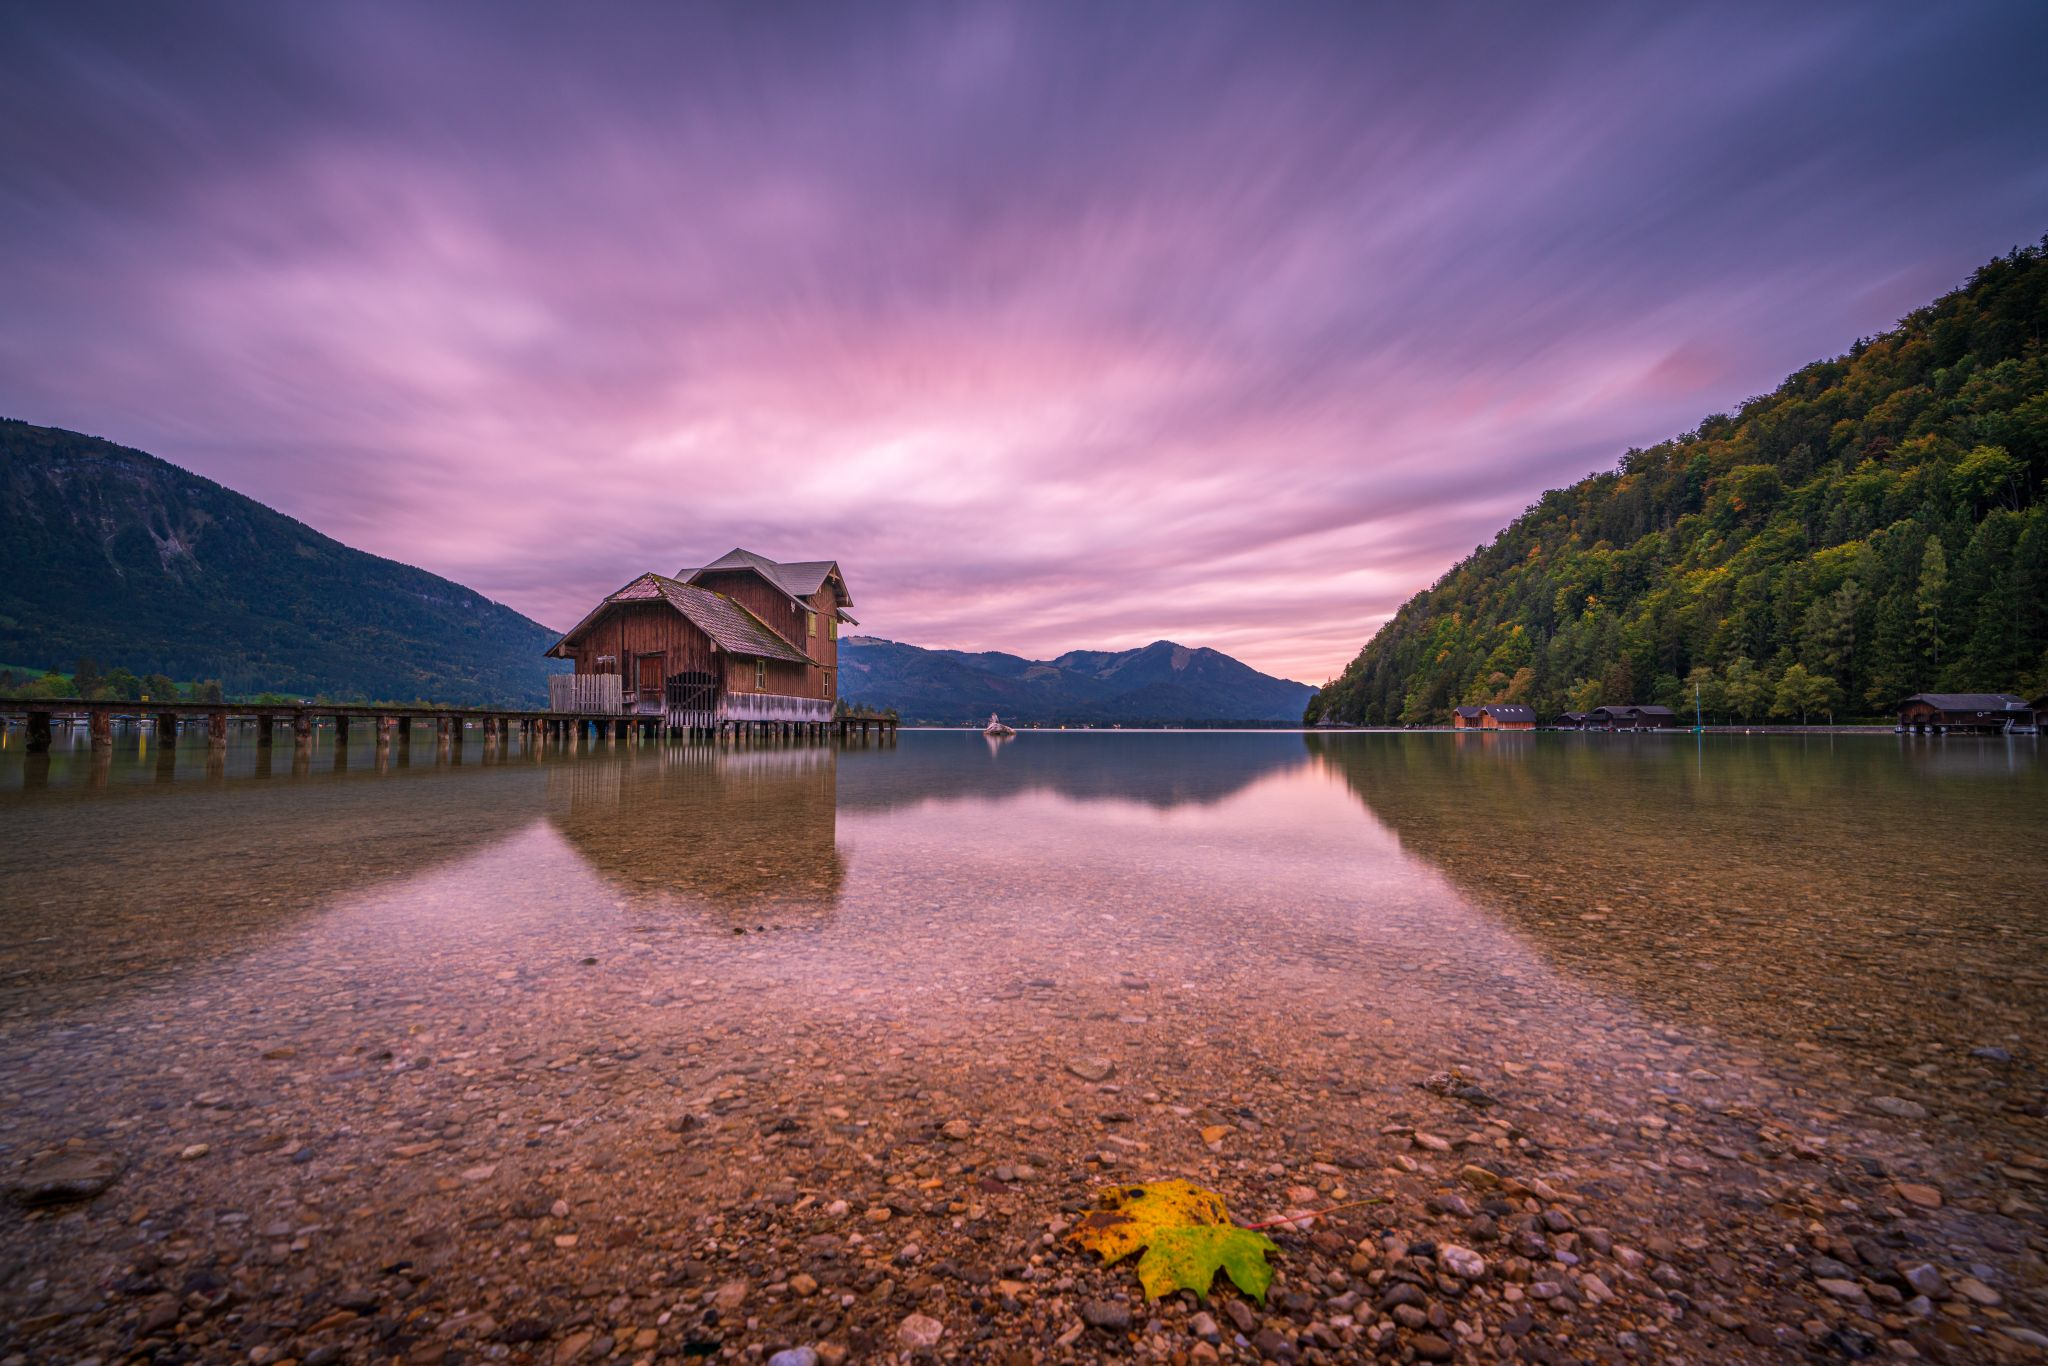 Boathouse on the lake, Austria